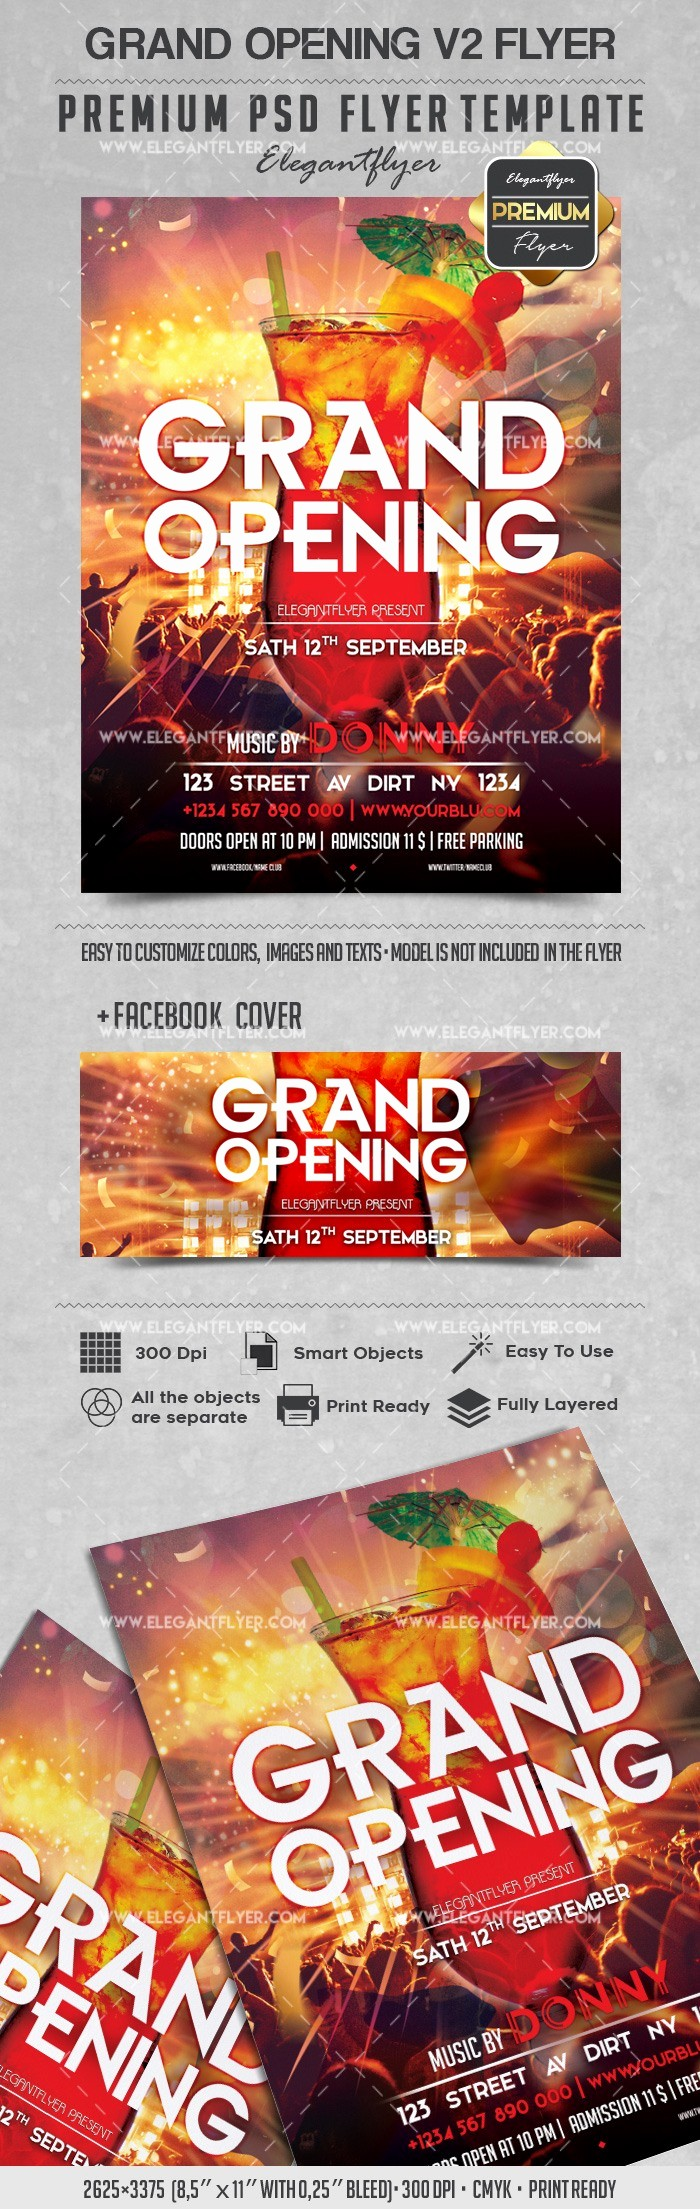 Free Grand Opening Flyer Template Fresh Grand Opening V2 – Flyer Psd Template – by Elegantflyer